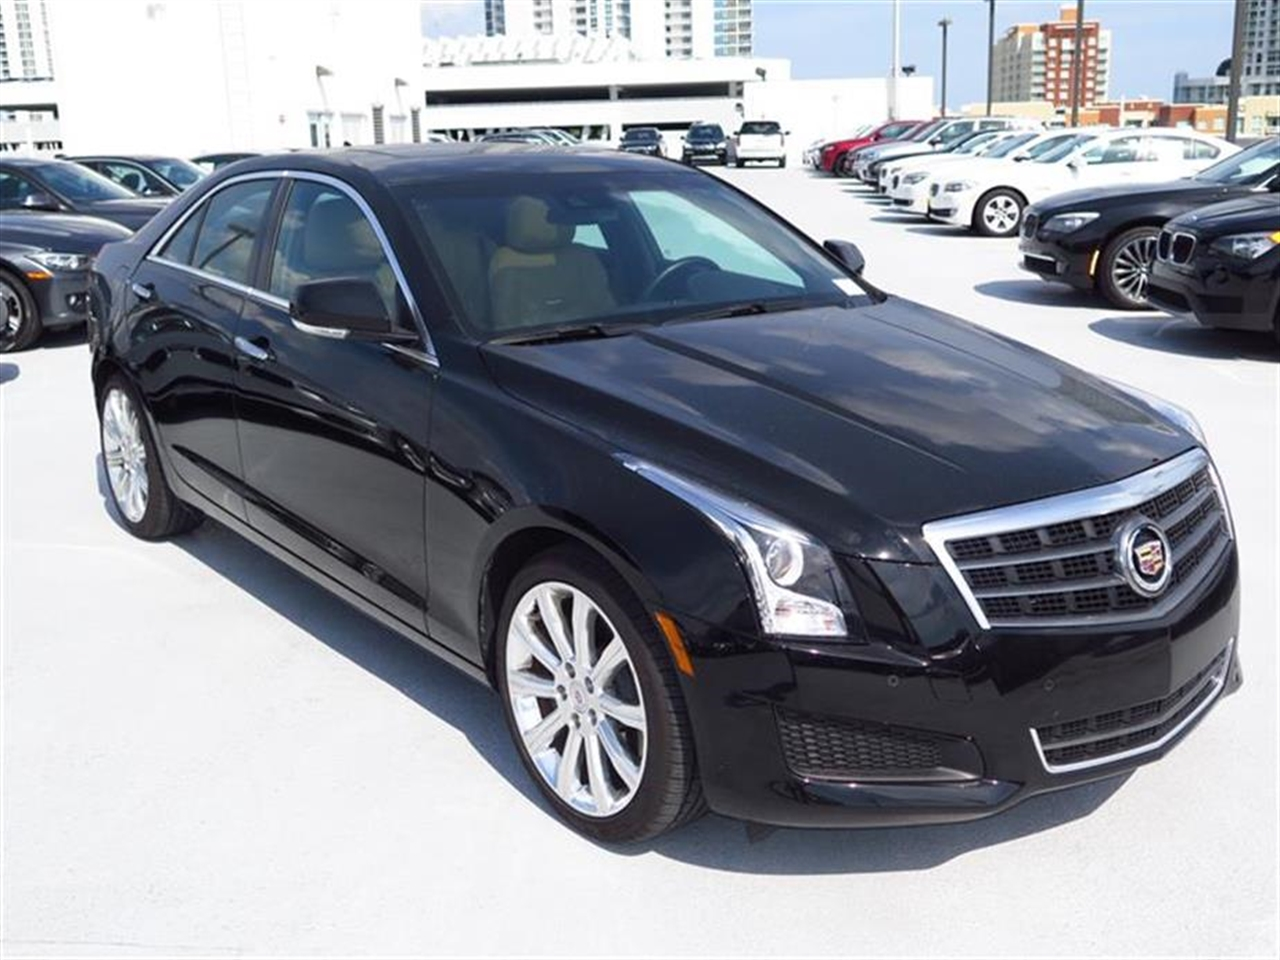 2014 CADILLAC ATS 4dr Sdn 25L Luxury RWD 10337 miles Adaptive Remote Start Air filtration syste